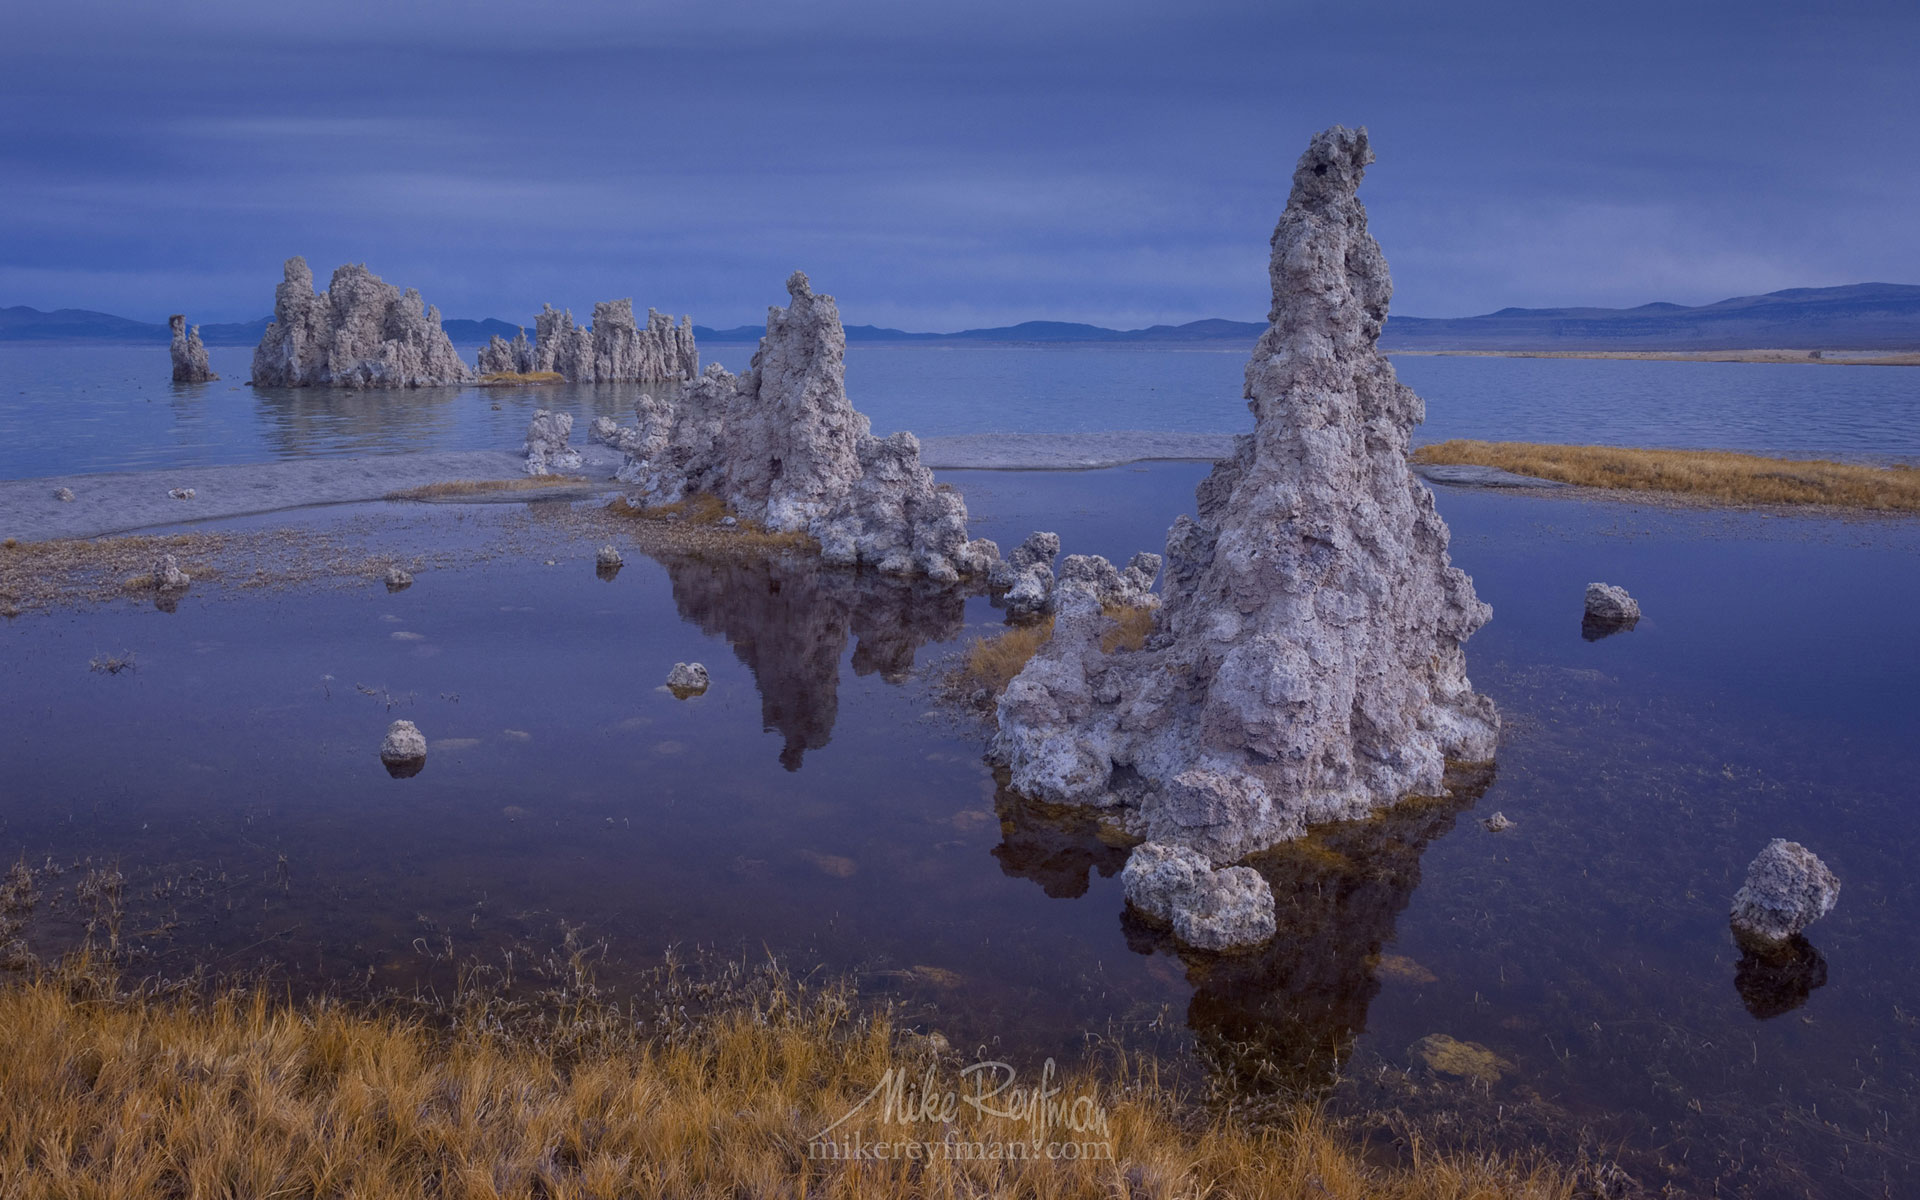 Mono Lake, Tufa State Natural Reserve, Eastern Sierra, California, USA ML1-MRMRO2578 - Mono Lake Tufa State Natural Reserve, Eastern Sierra, California - Mike Reyfman Photography